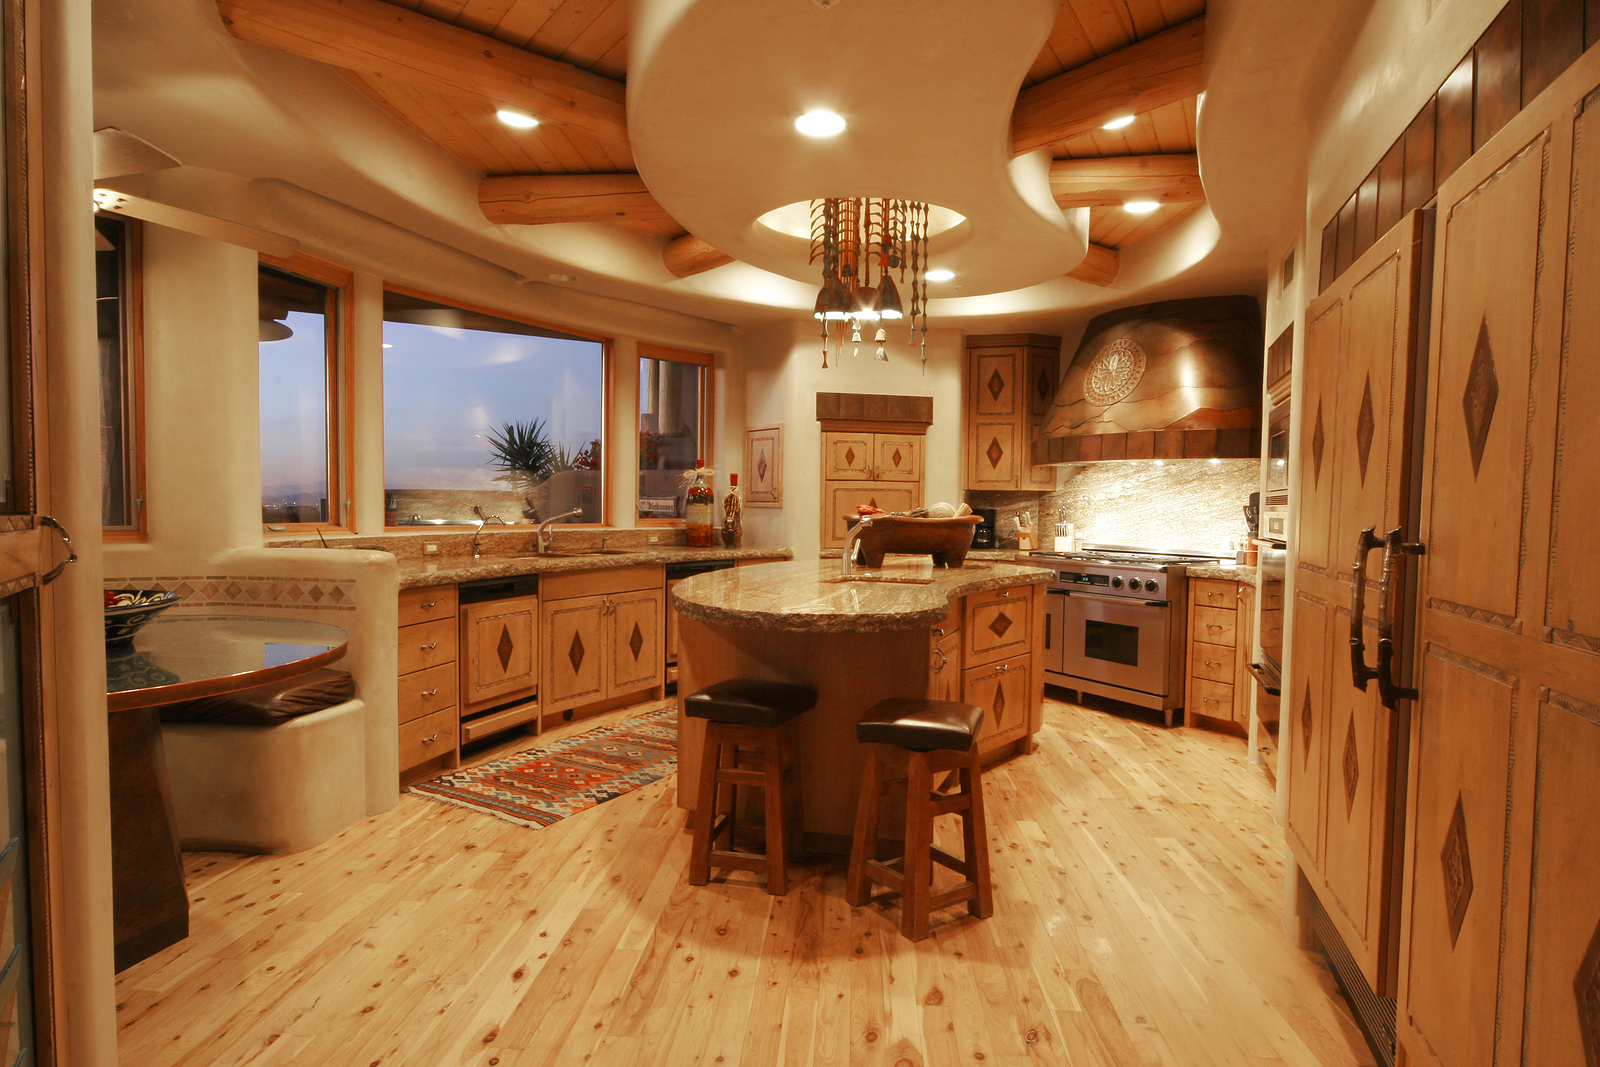 Incredible Rustic Kitchen Design 1600 x 1067 · 1797 kB · jpeg